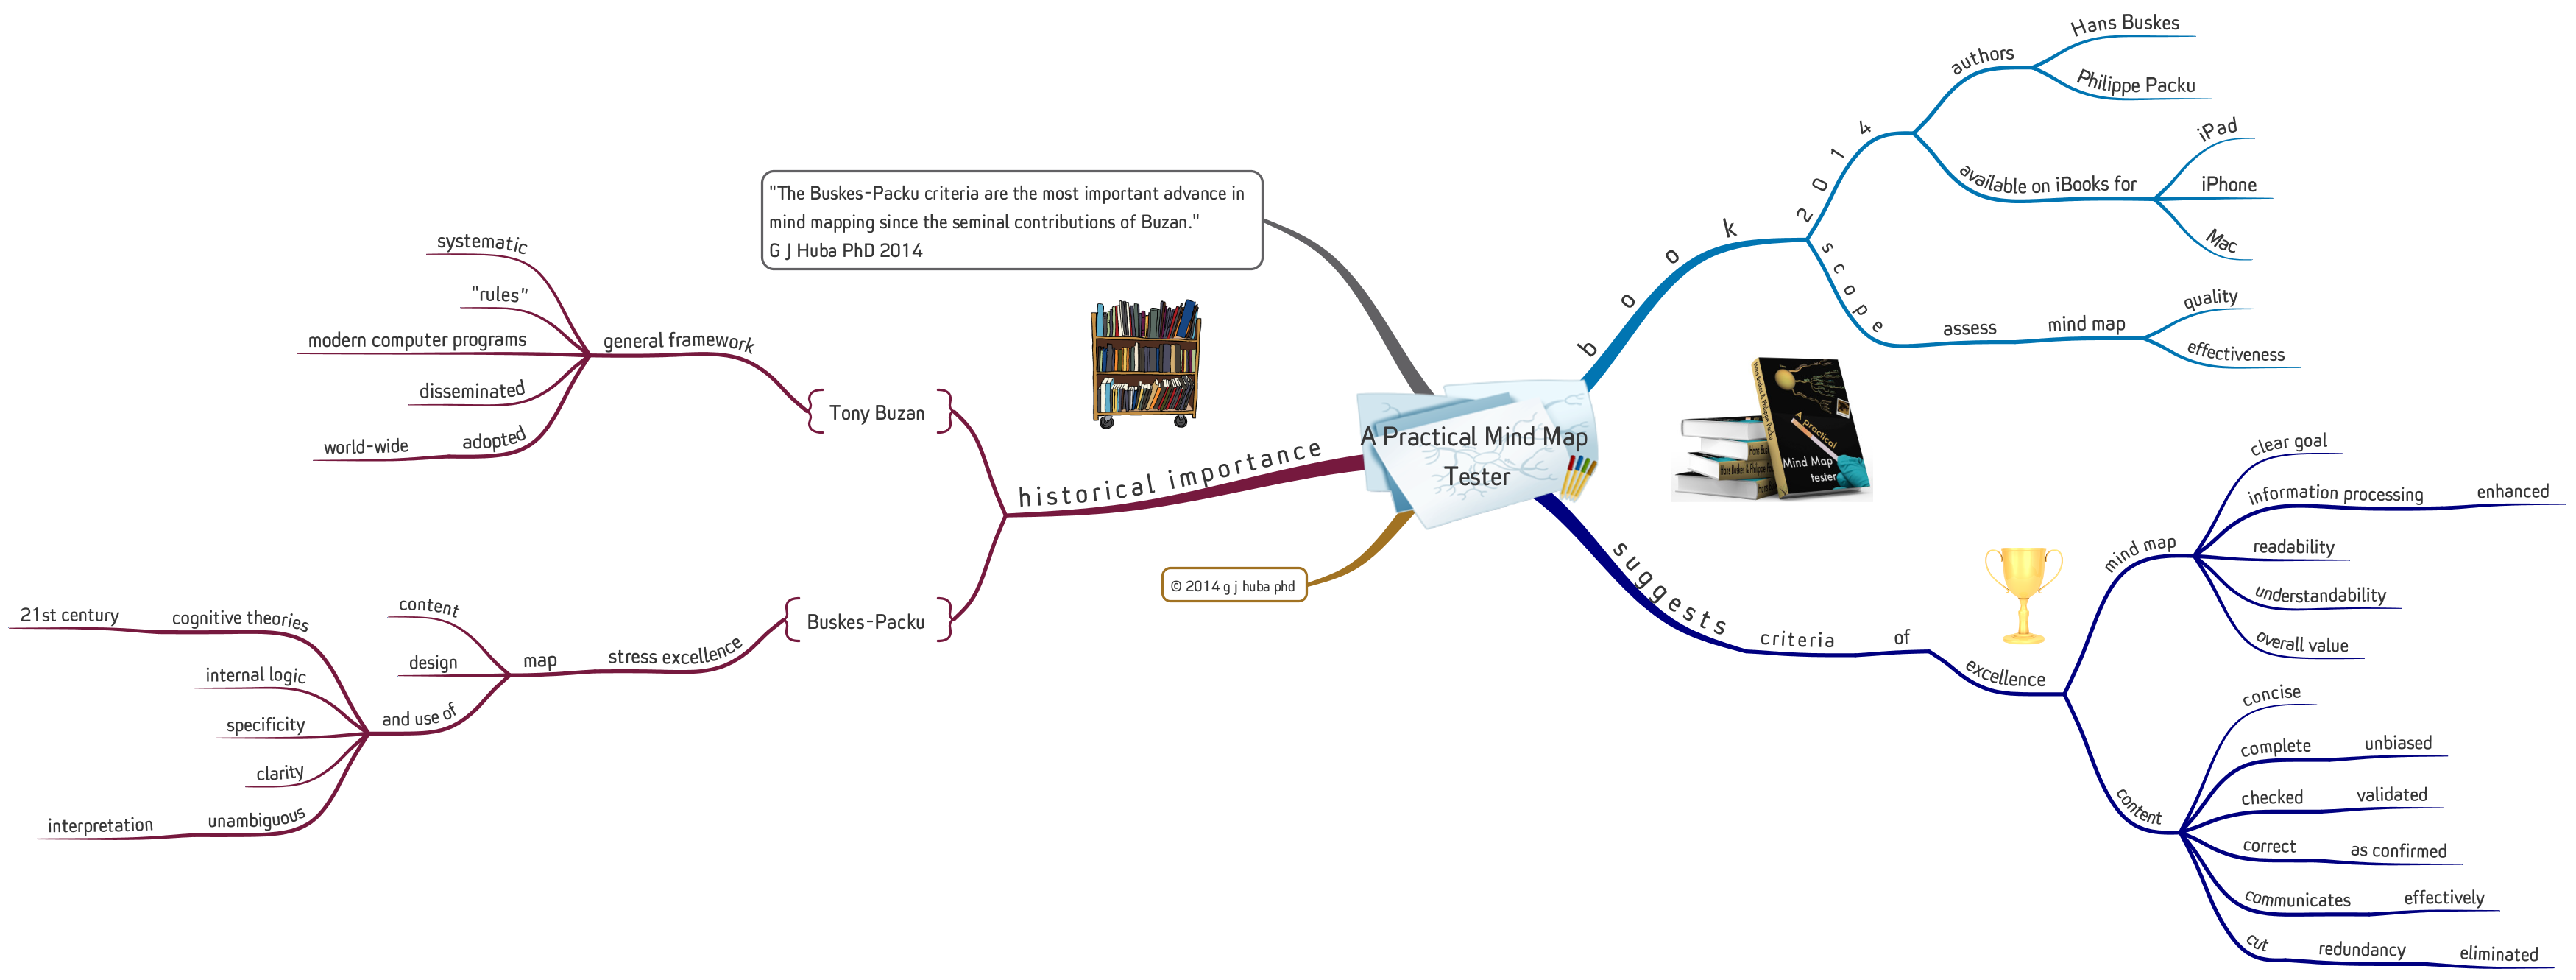 A Practical Mind Map Tester